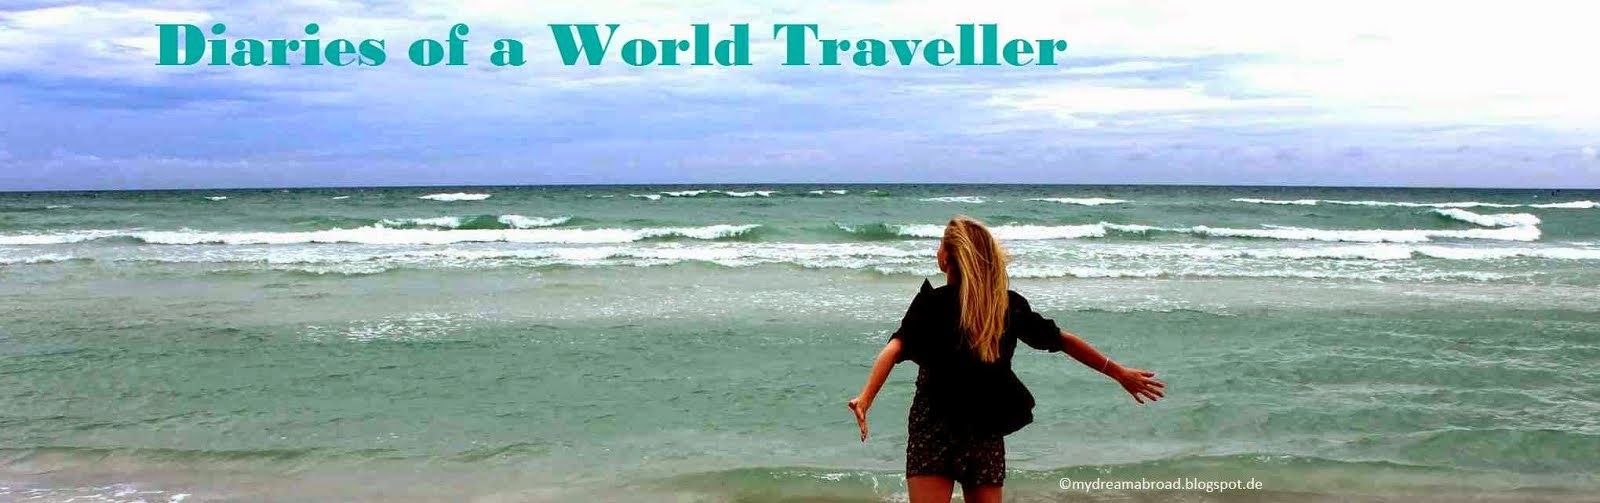 Diaries of a World Traveller